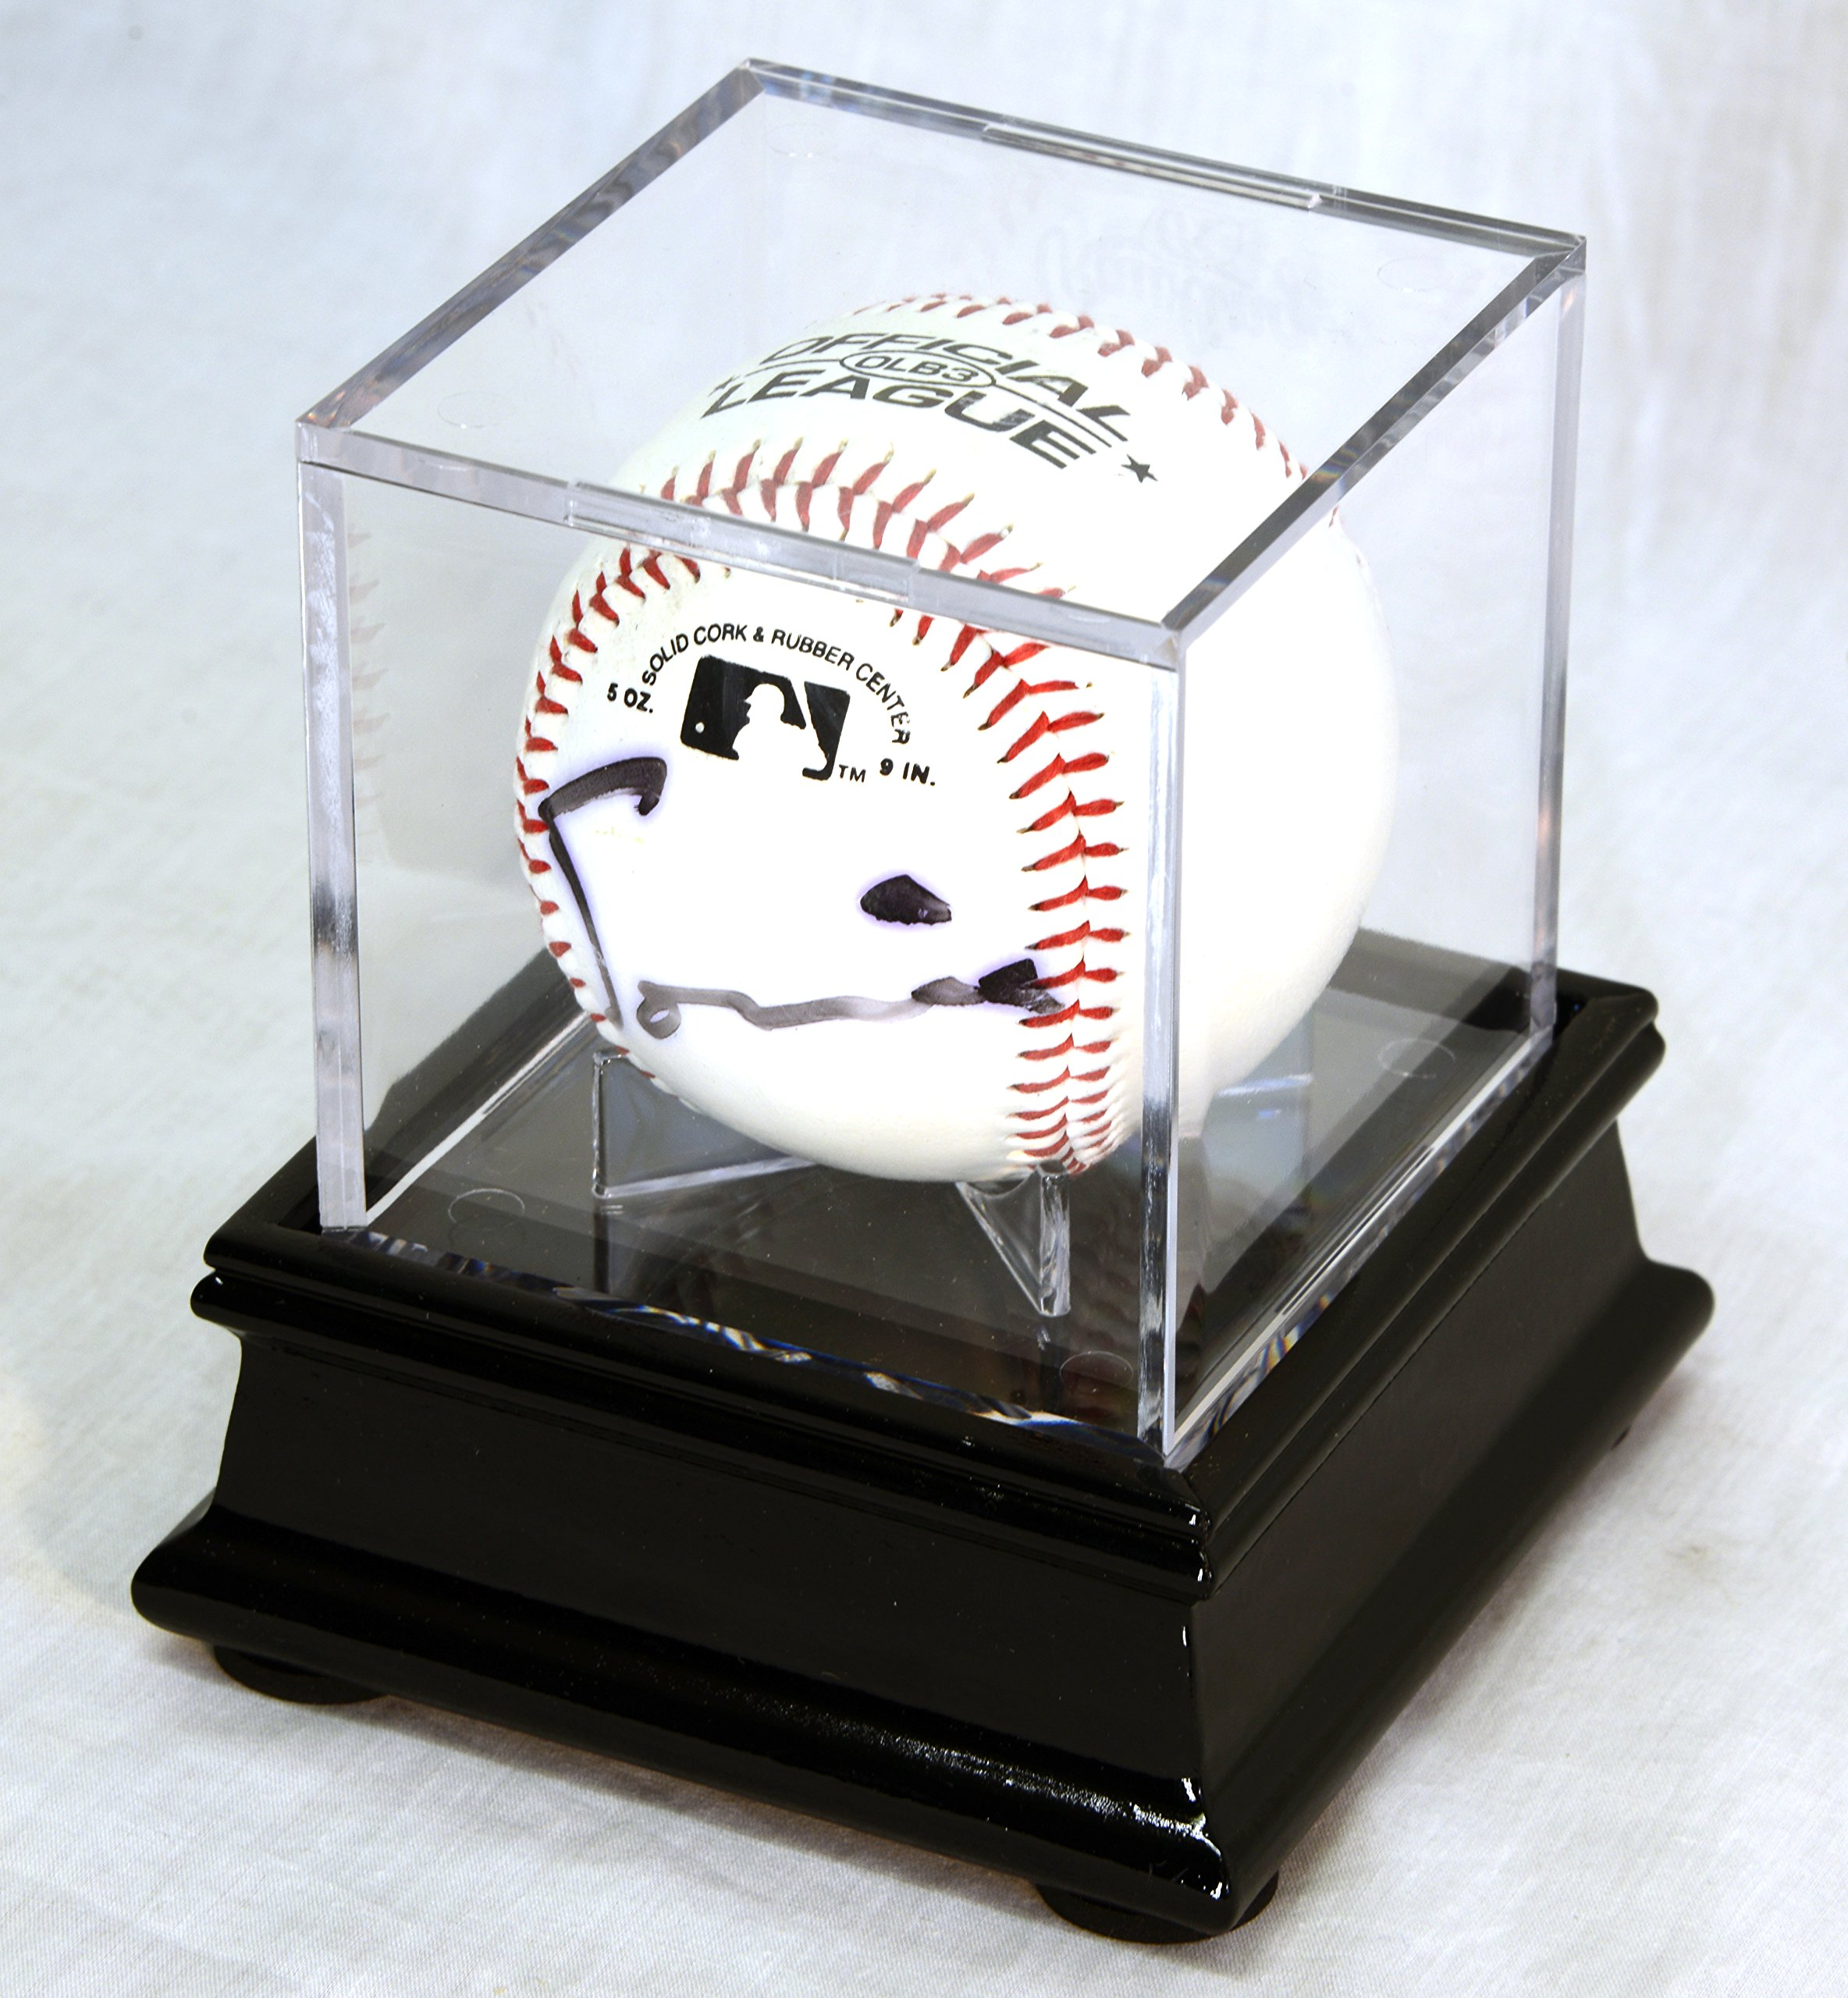 Single Baseball Cube Display Case Stand with 98% UV Ultra Pro Cube Included (Black Finish) by sfDisplay.com,LLC. (Image #1)